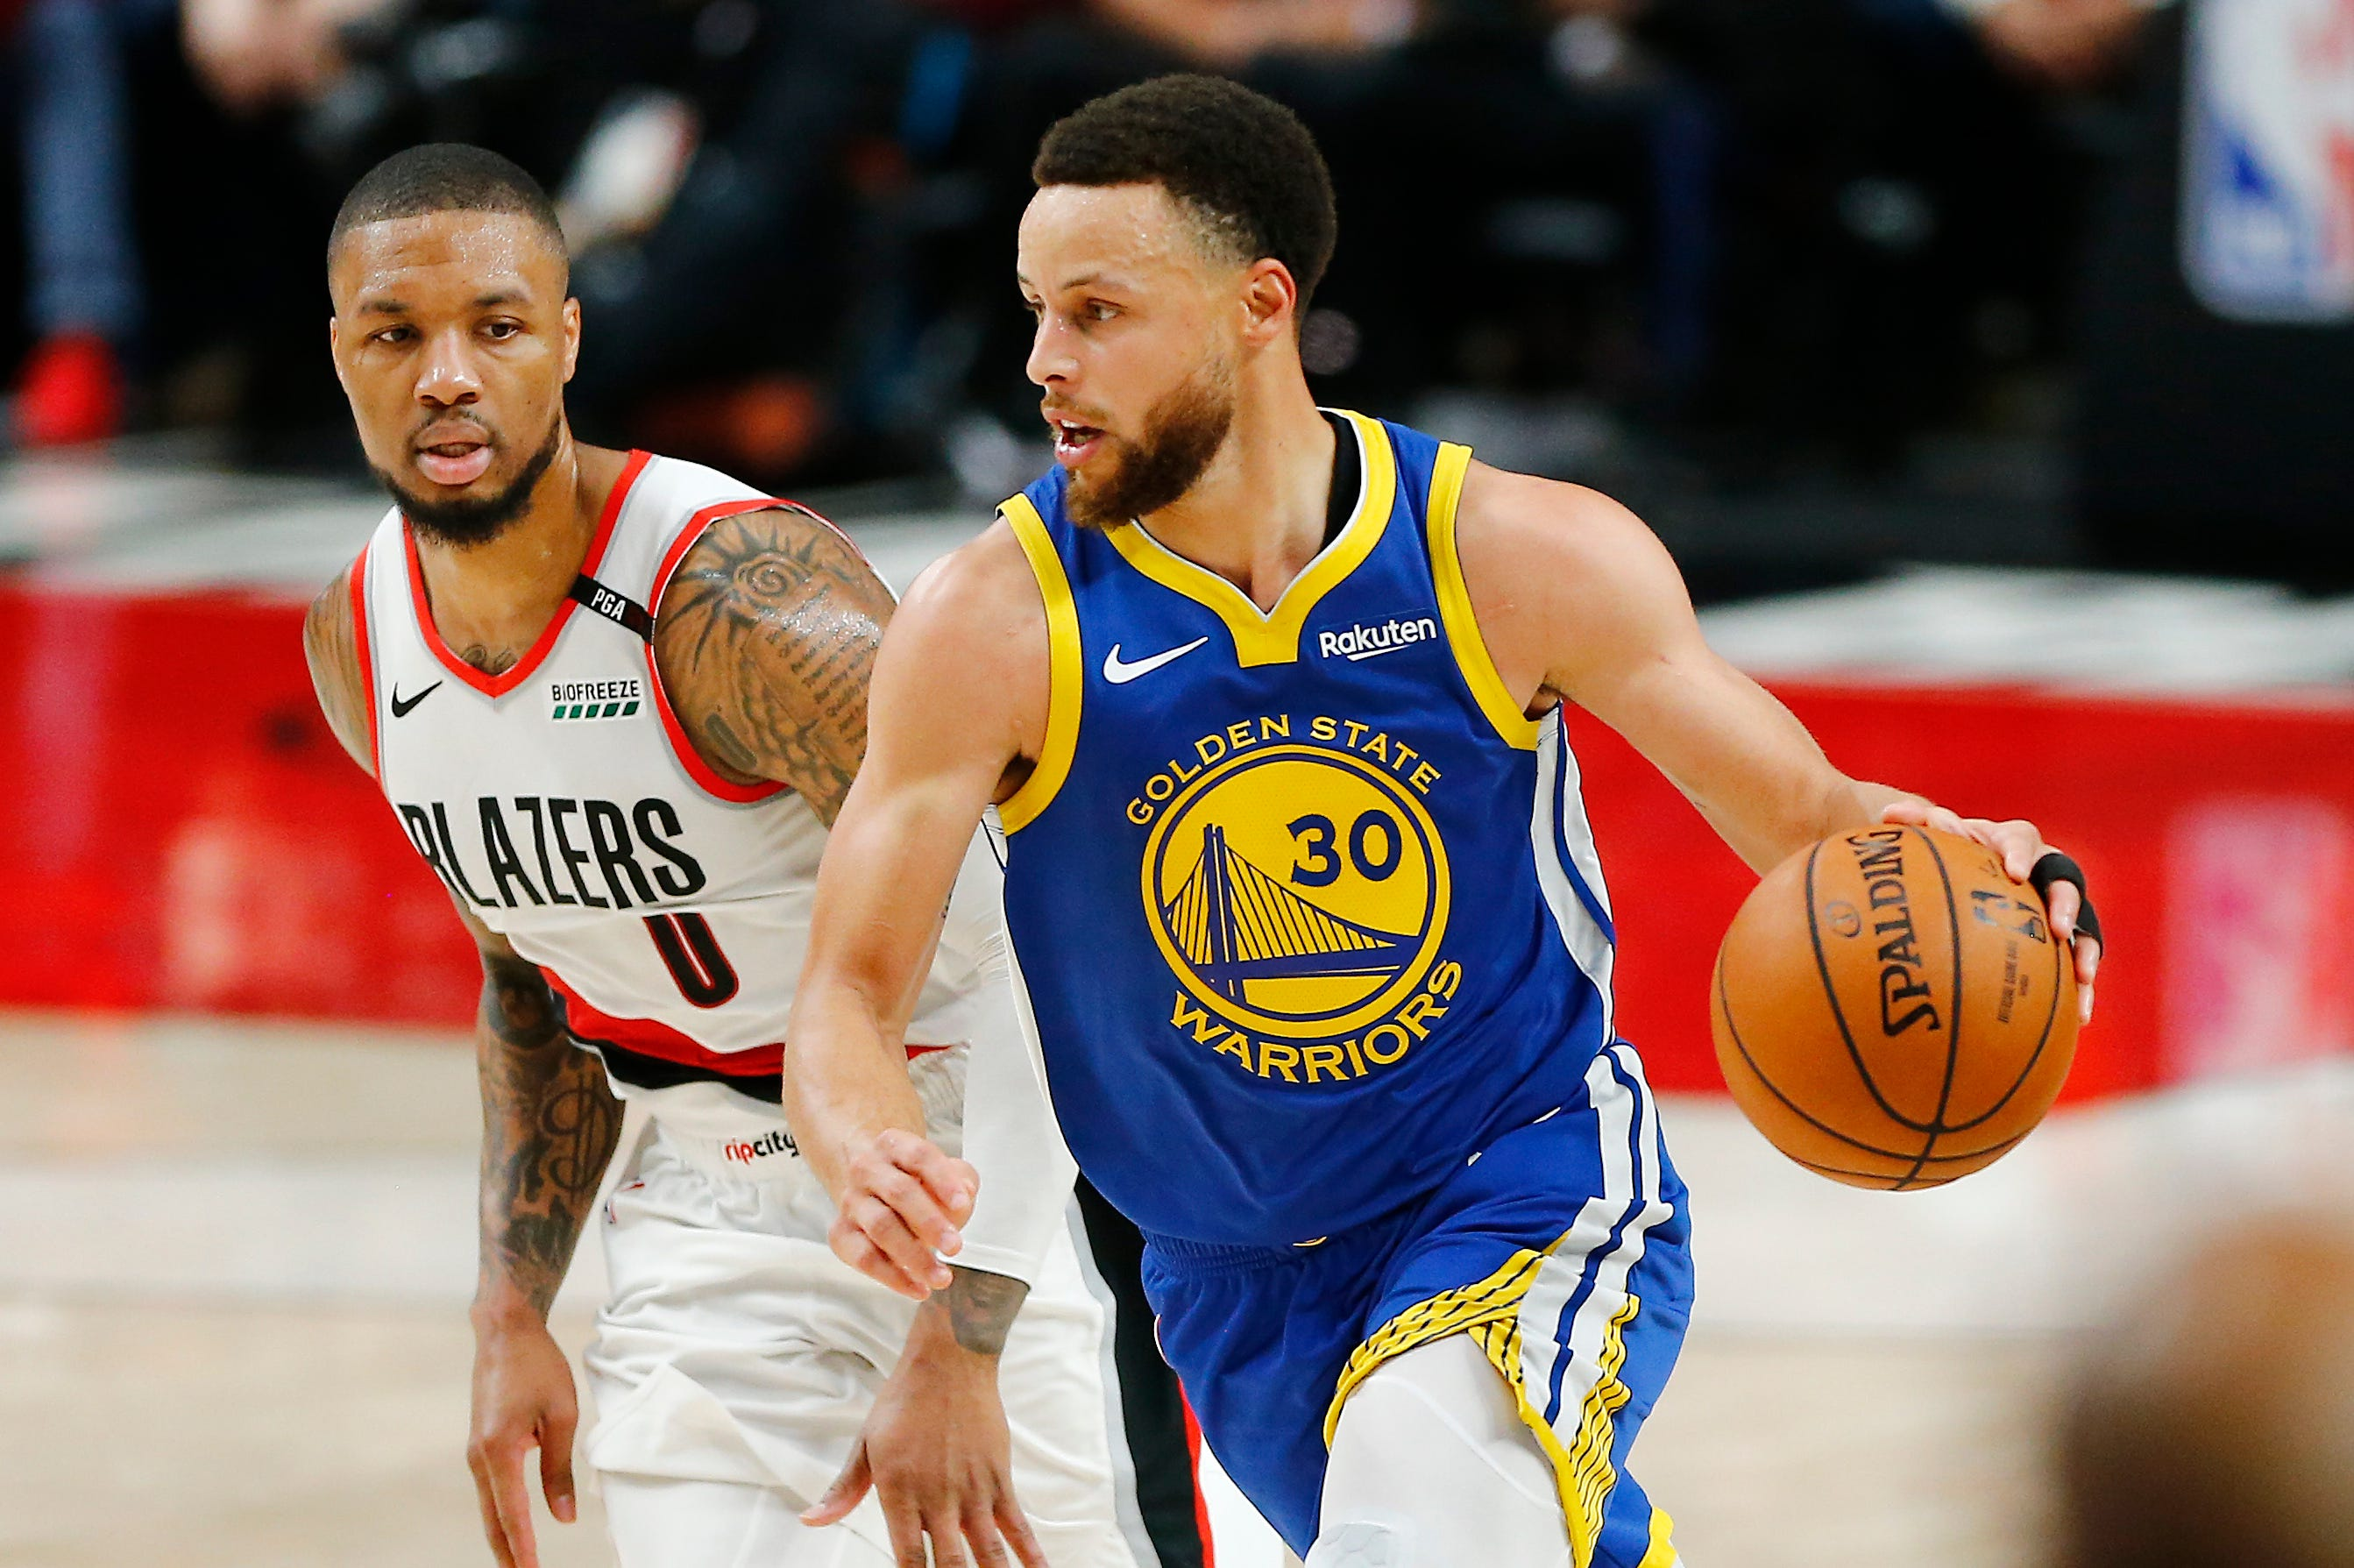 NBA schedule released: Must-see games of 2019-20 season